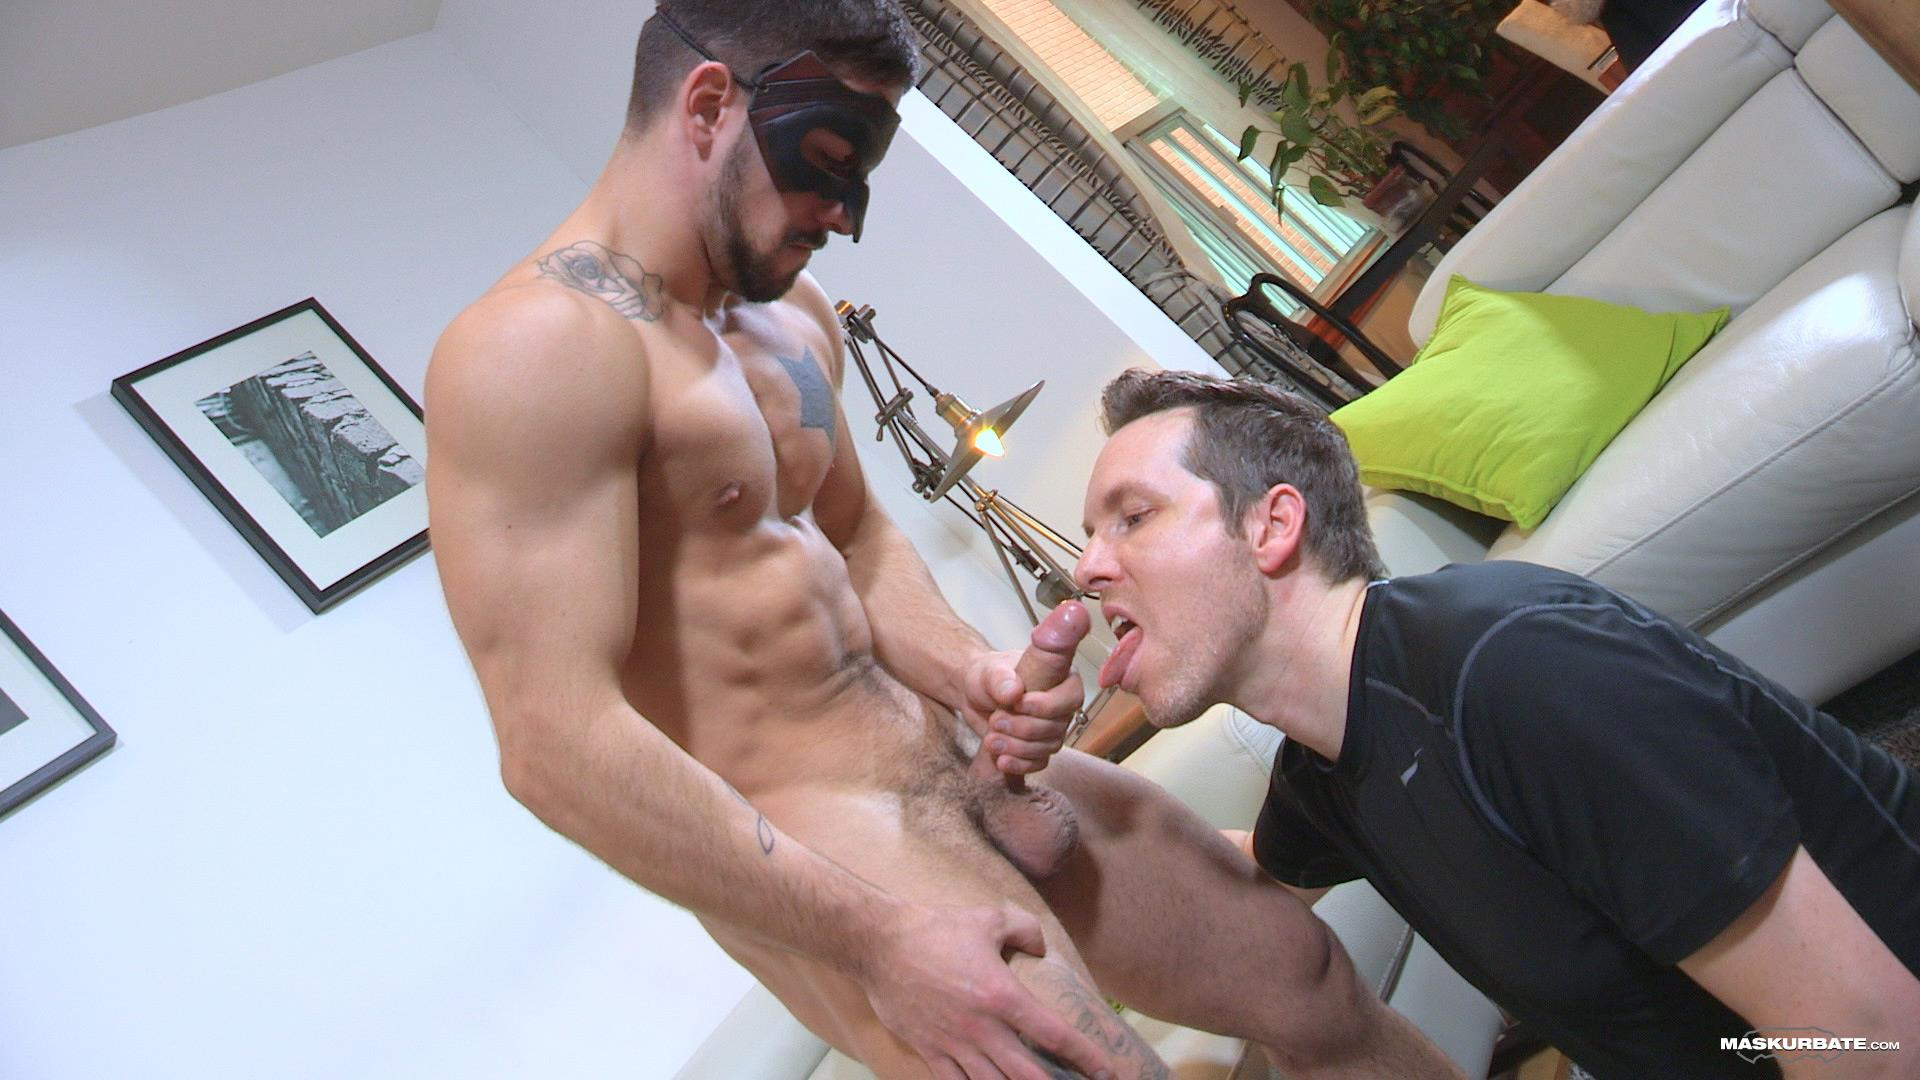 Maskurbate Carl Straight Muscle Jock With A Big Cock Amateur Gay Porn 13 Straight Muscle Hunk Gets His First Blow Job From Another Guy